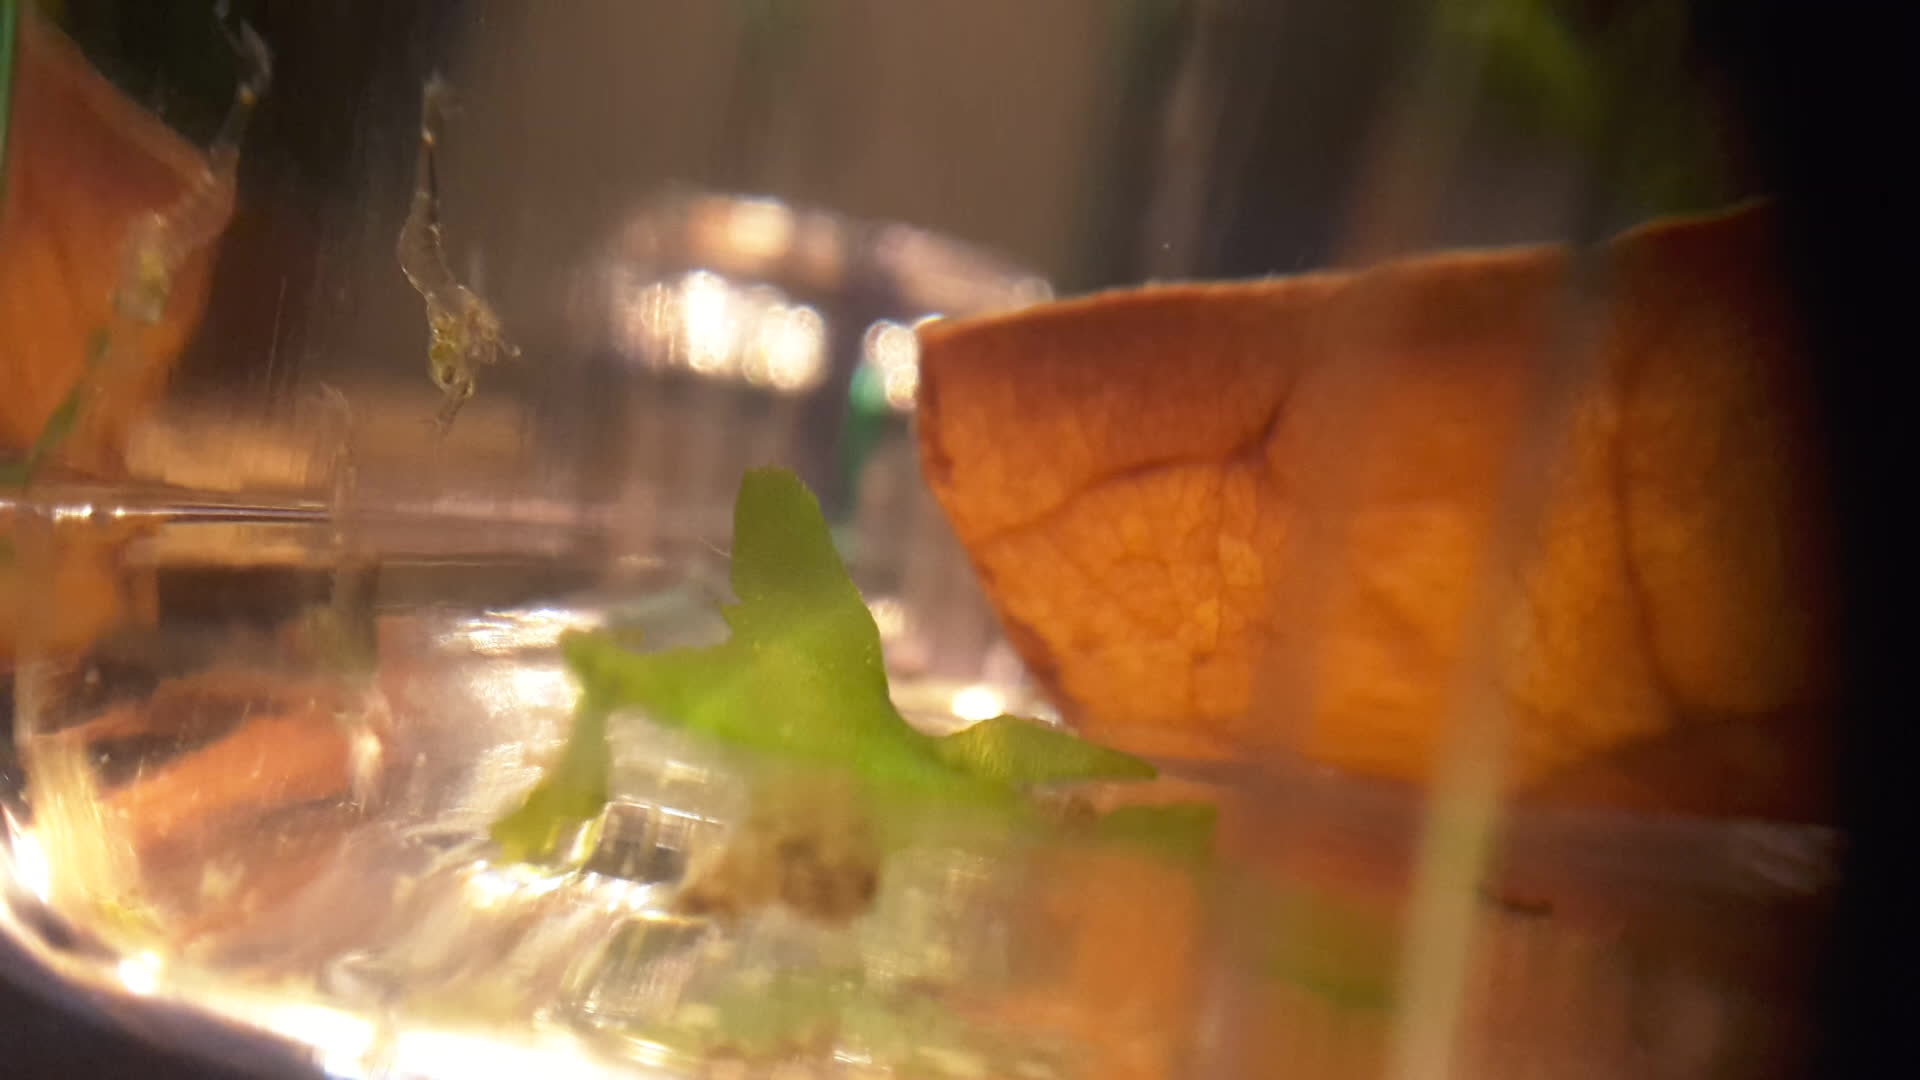 shrimptank, One day old ghost shrimp feeding on copepod(?) (reddit) GIFs